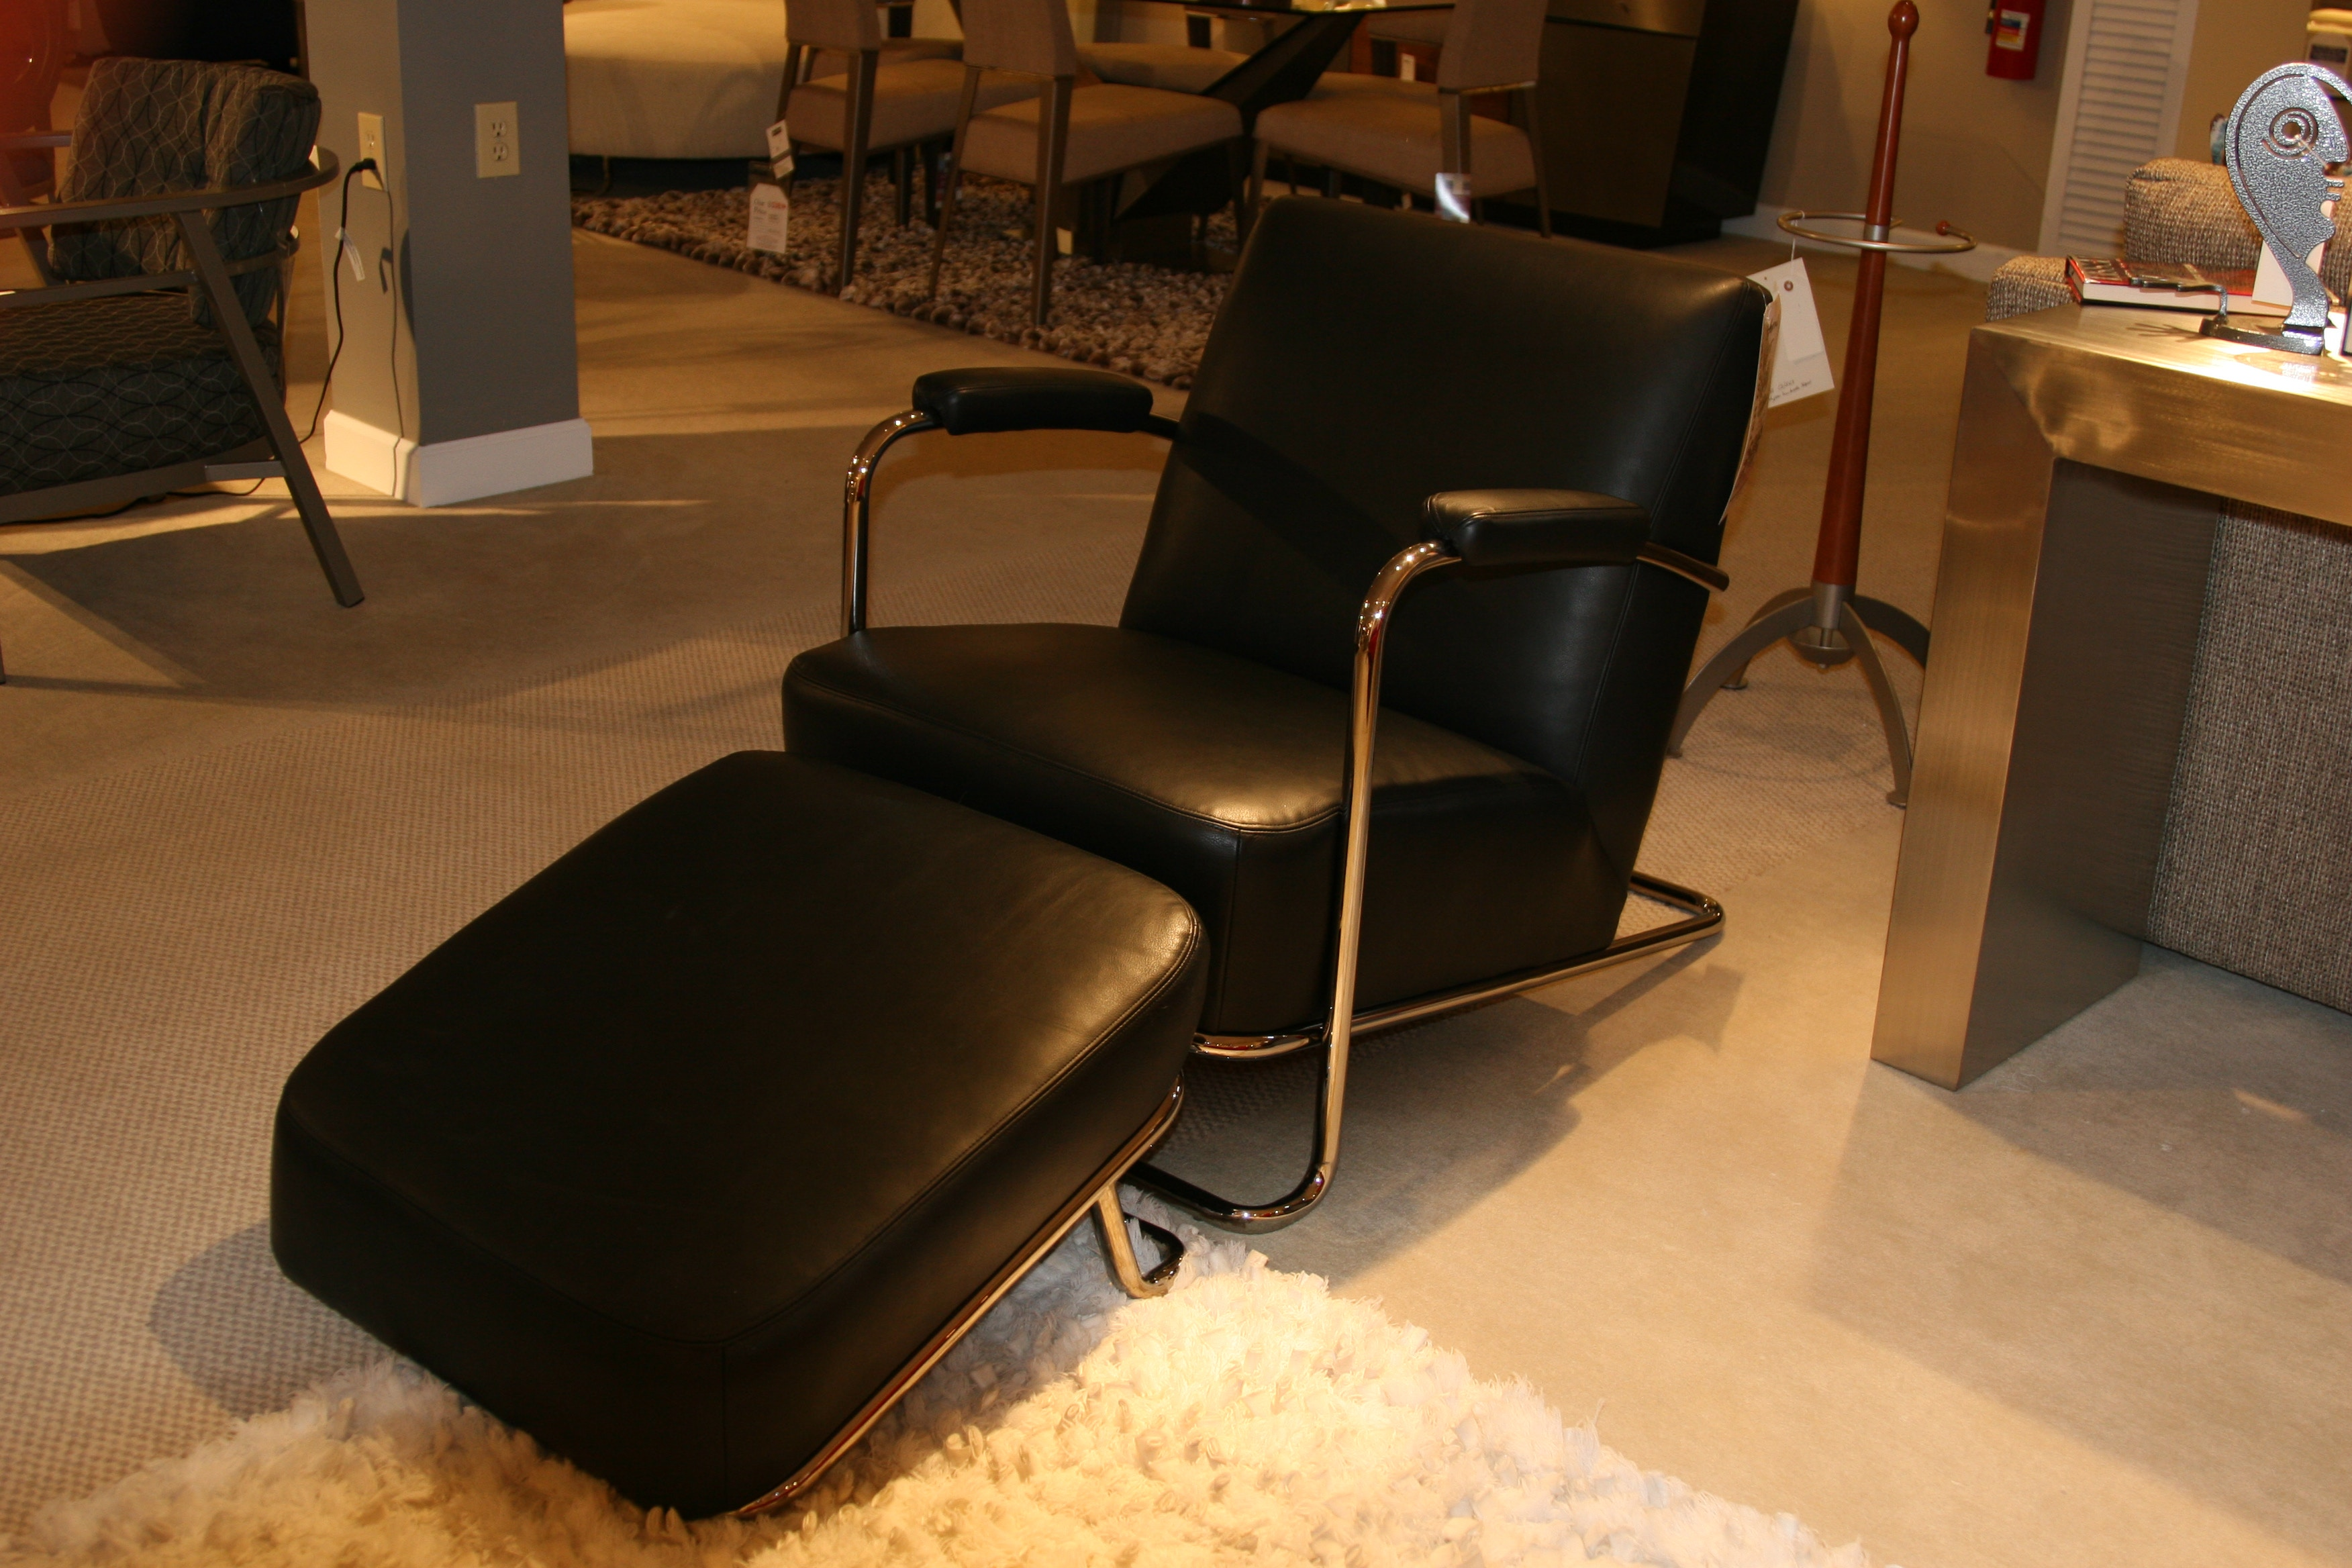 Reflections Furniture Outlet Modern Leather Chair And Ottoman By  Reflections 1088 C!